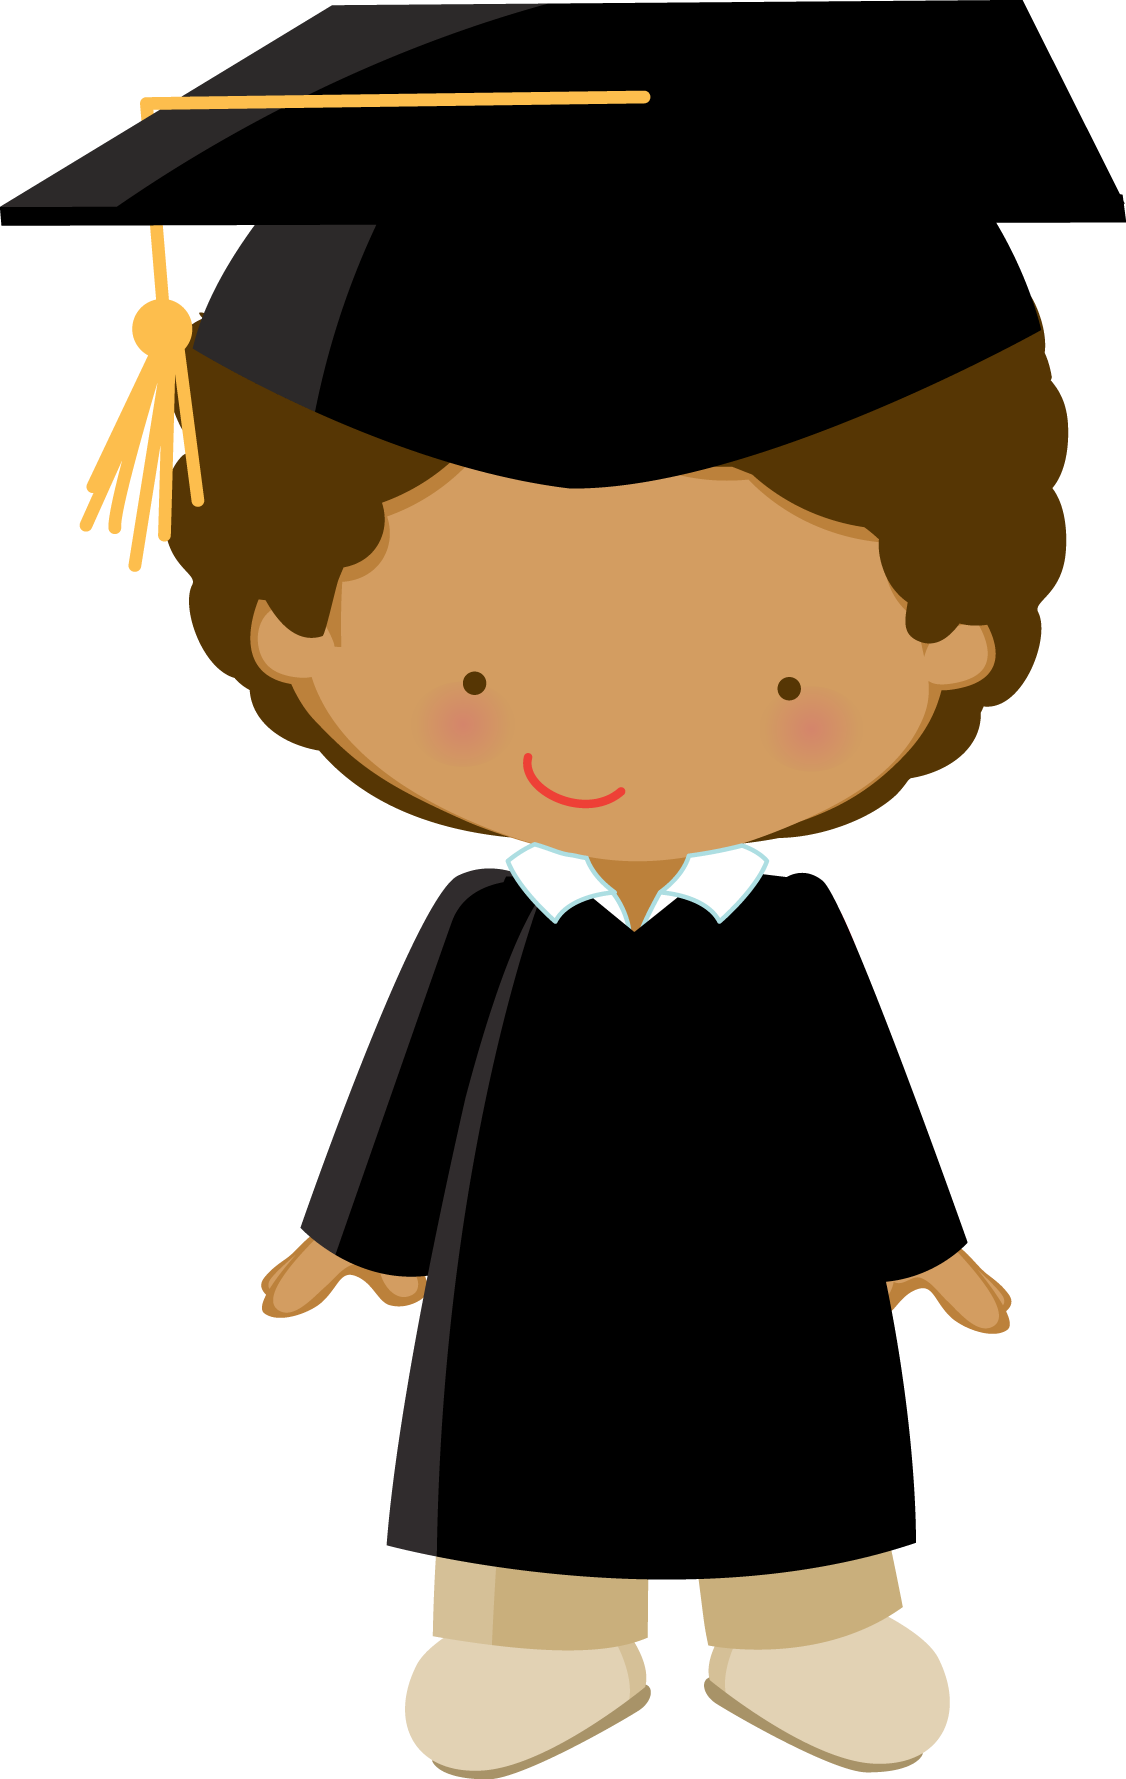 Preschool clipart graduation. Little graduate zwd boy